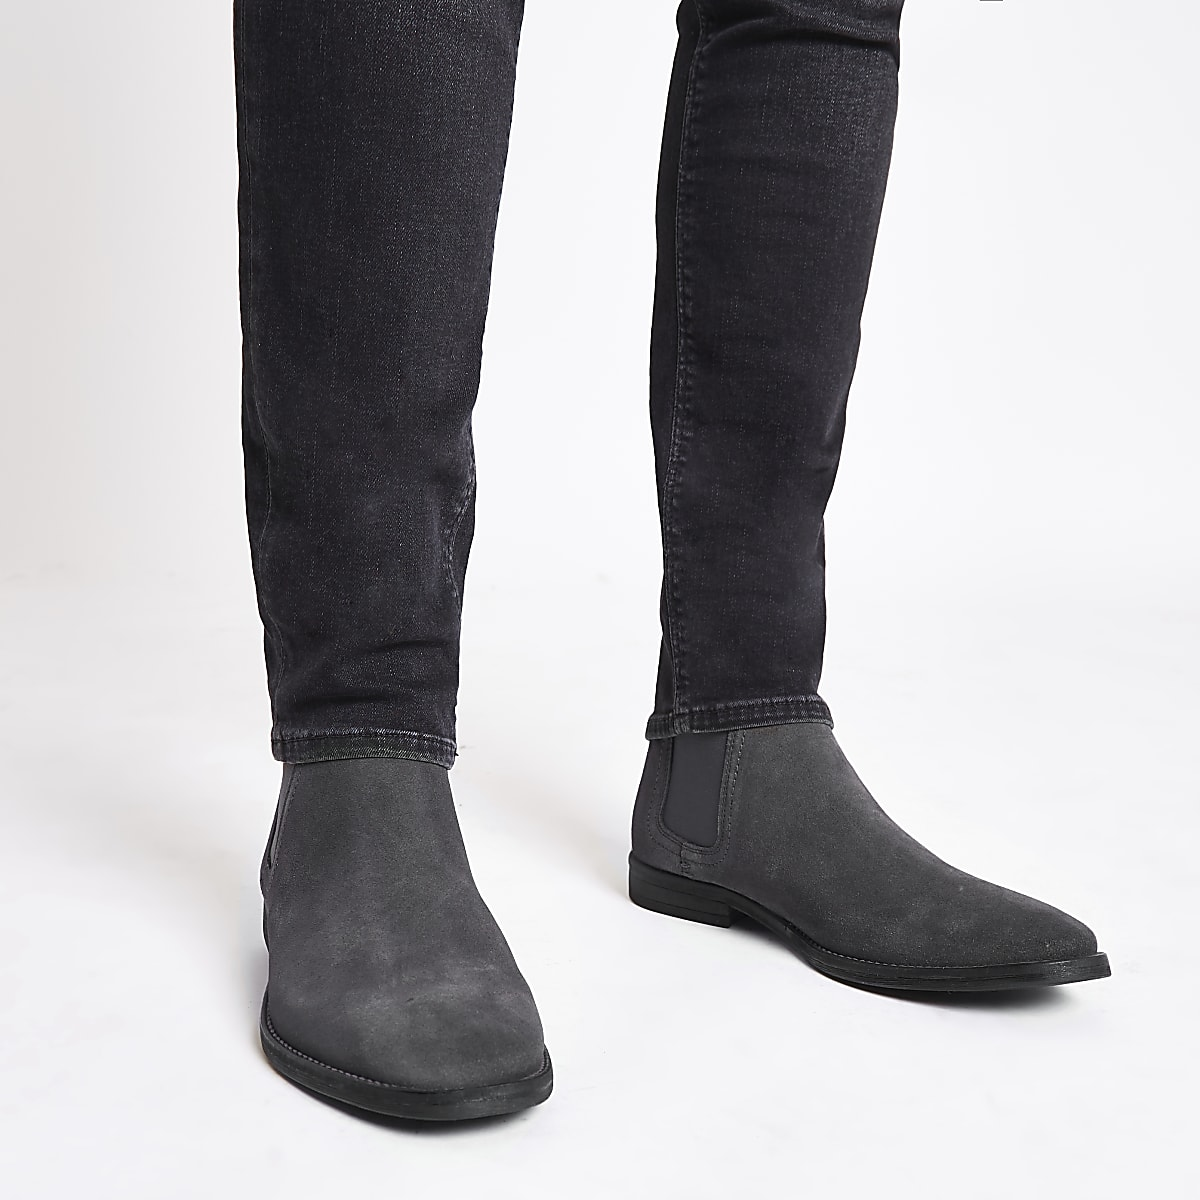 cebd3e3d206 Grey suede chelsea boots